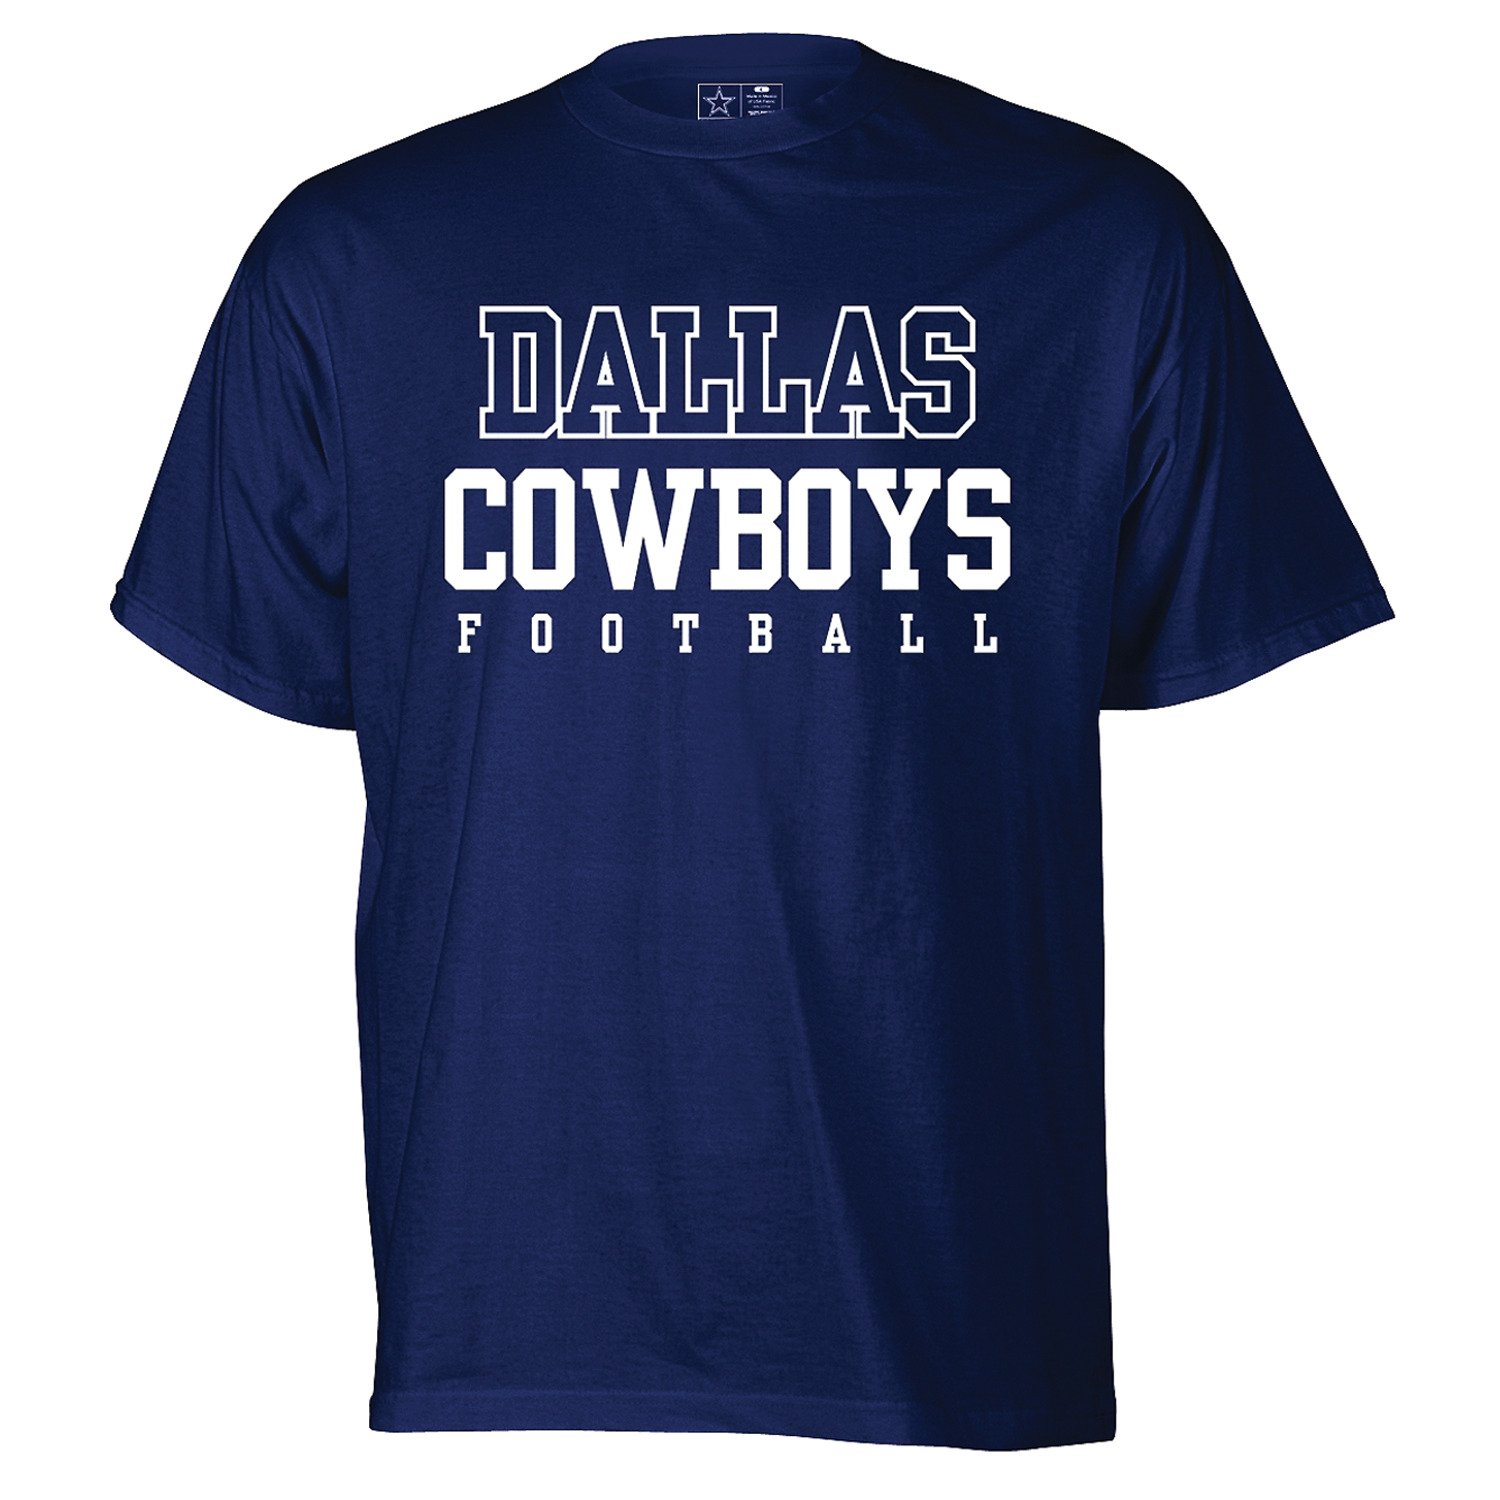 94c04fb46ee Dallas Cowboys Clothing | Dallas Cowboys Jerseys & Shirts | Academy